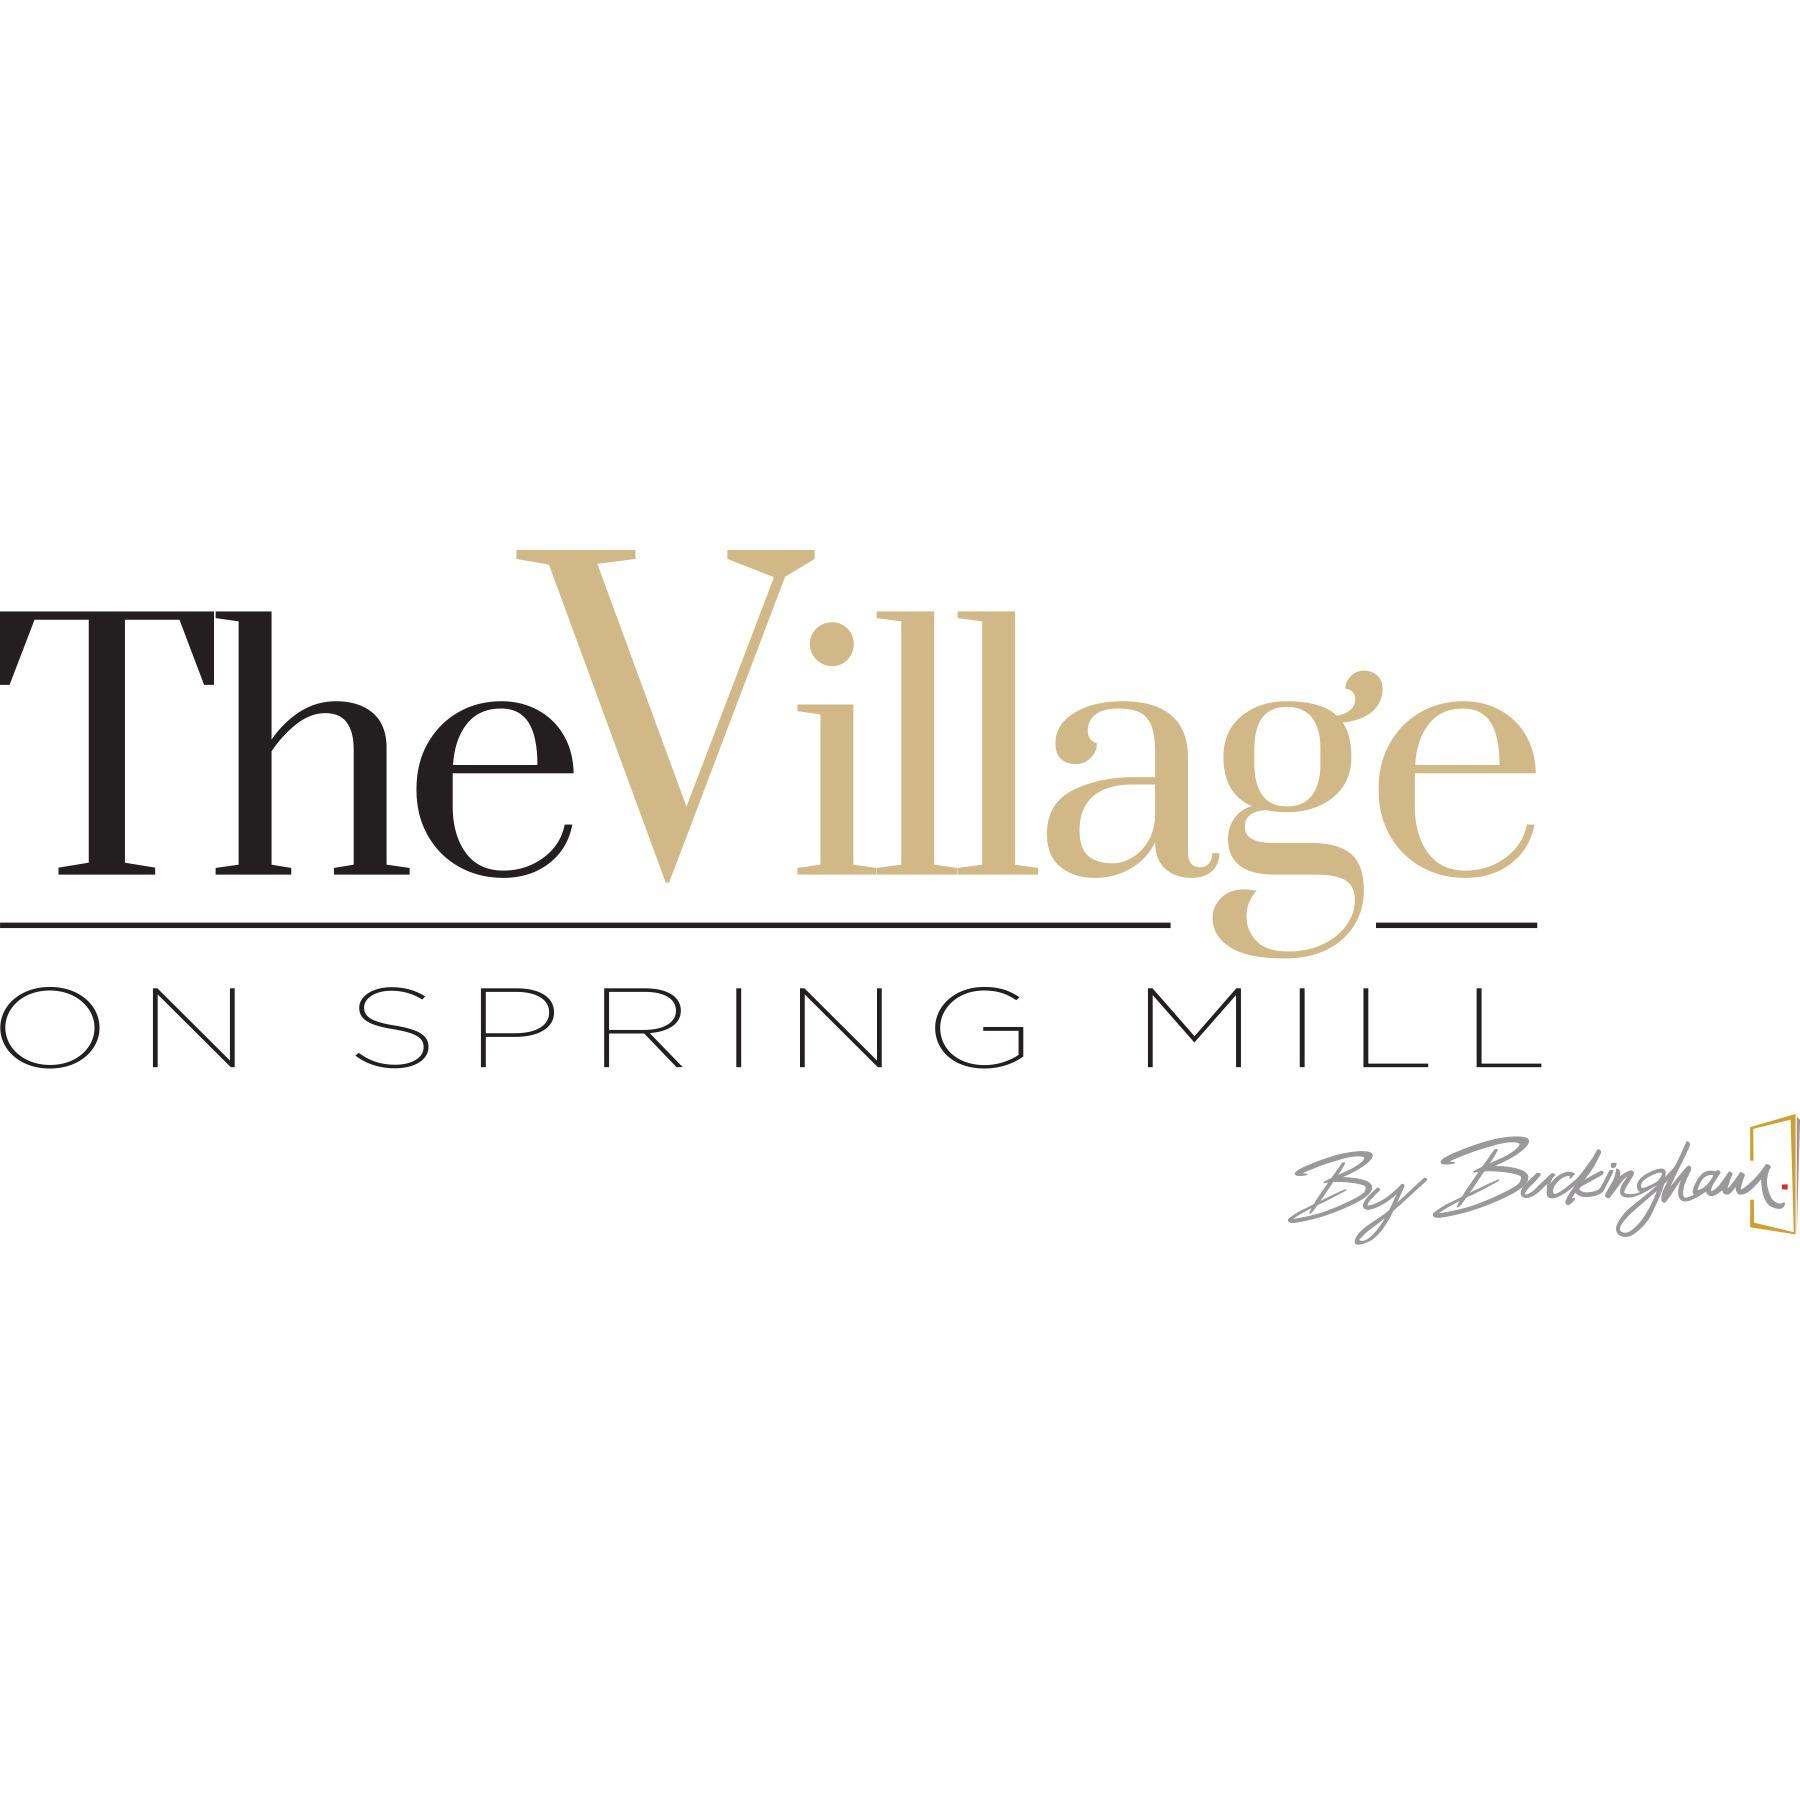 The Village on Spring Mill